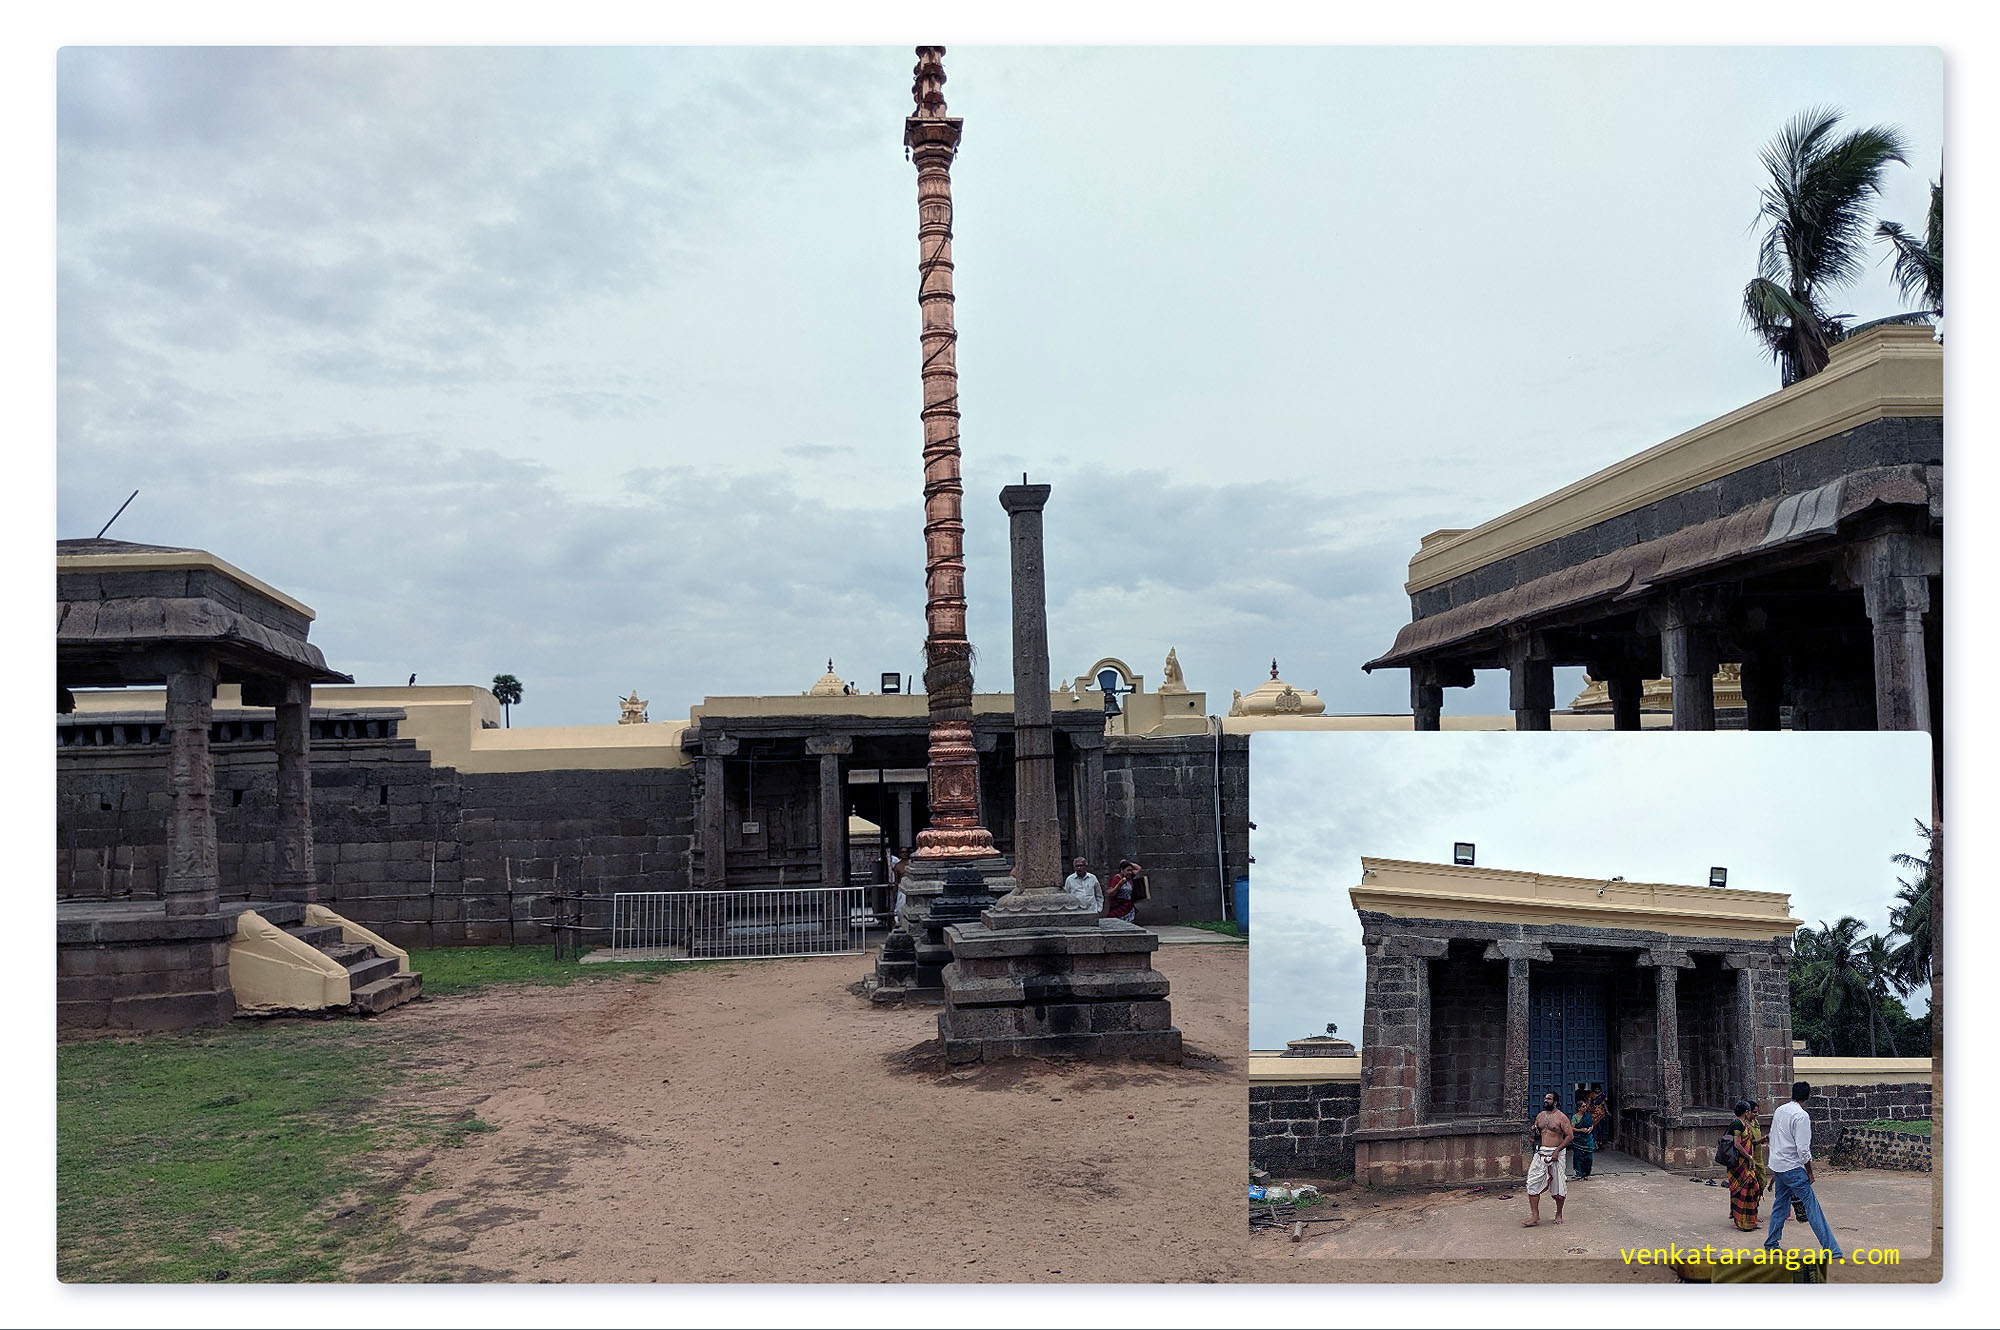 View of the dwajasthambam (Dhvaja sthambham or கொடி மரம் or கொடி கம்பம், which is a flagstaff and a common feature of South Indian Hindu temples)